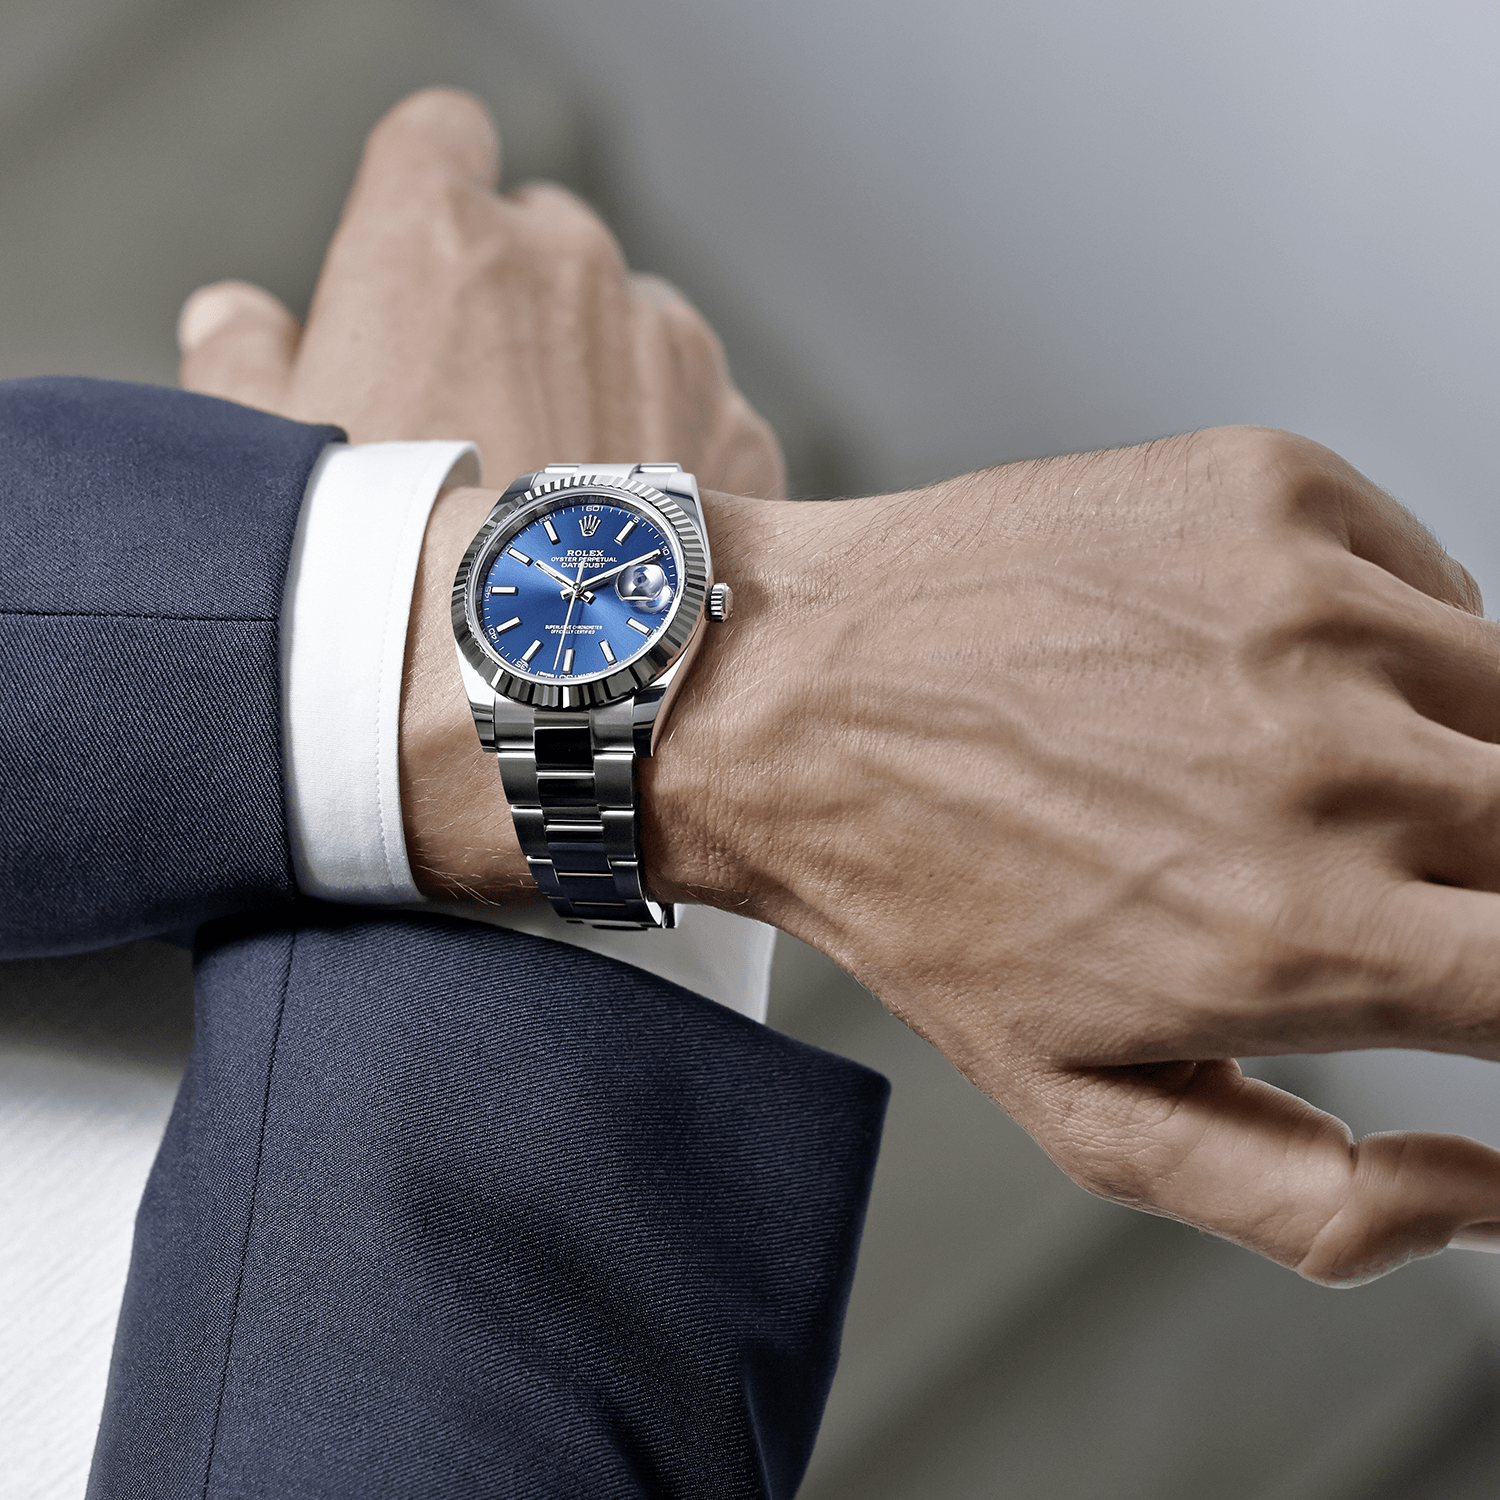 The Rolex Datejust 41 in steel and white gold, 41 mm case, blue dial, Oyster bracelet. The classic watch of reference #Rolex #Datejust #rolexdatejust